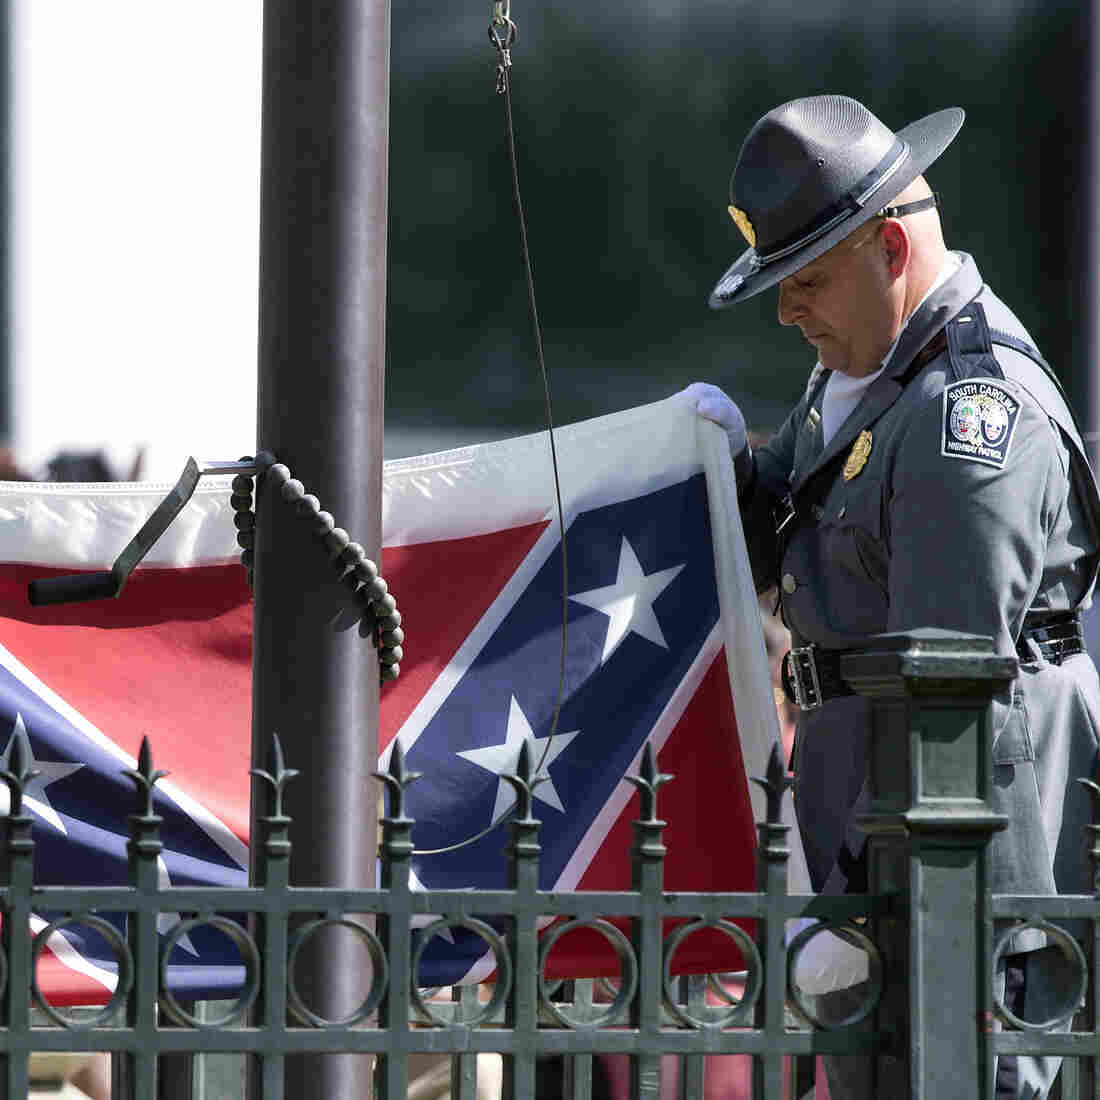 An honor guard from the South Carolina Highway Patrol lowers the Confederate battle flag, removing it from the Capitol grounds on July 10.